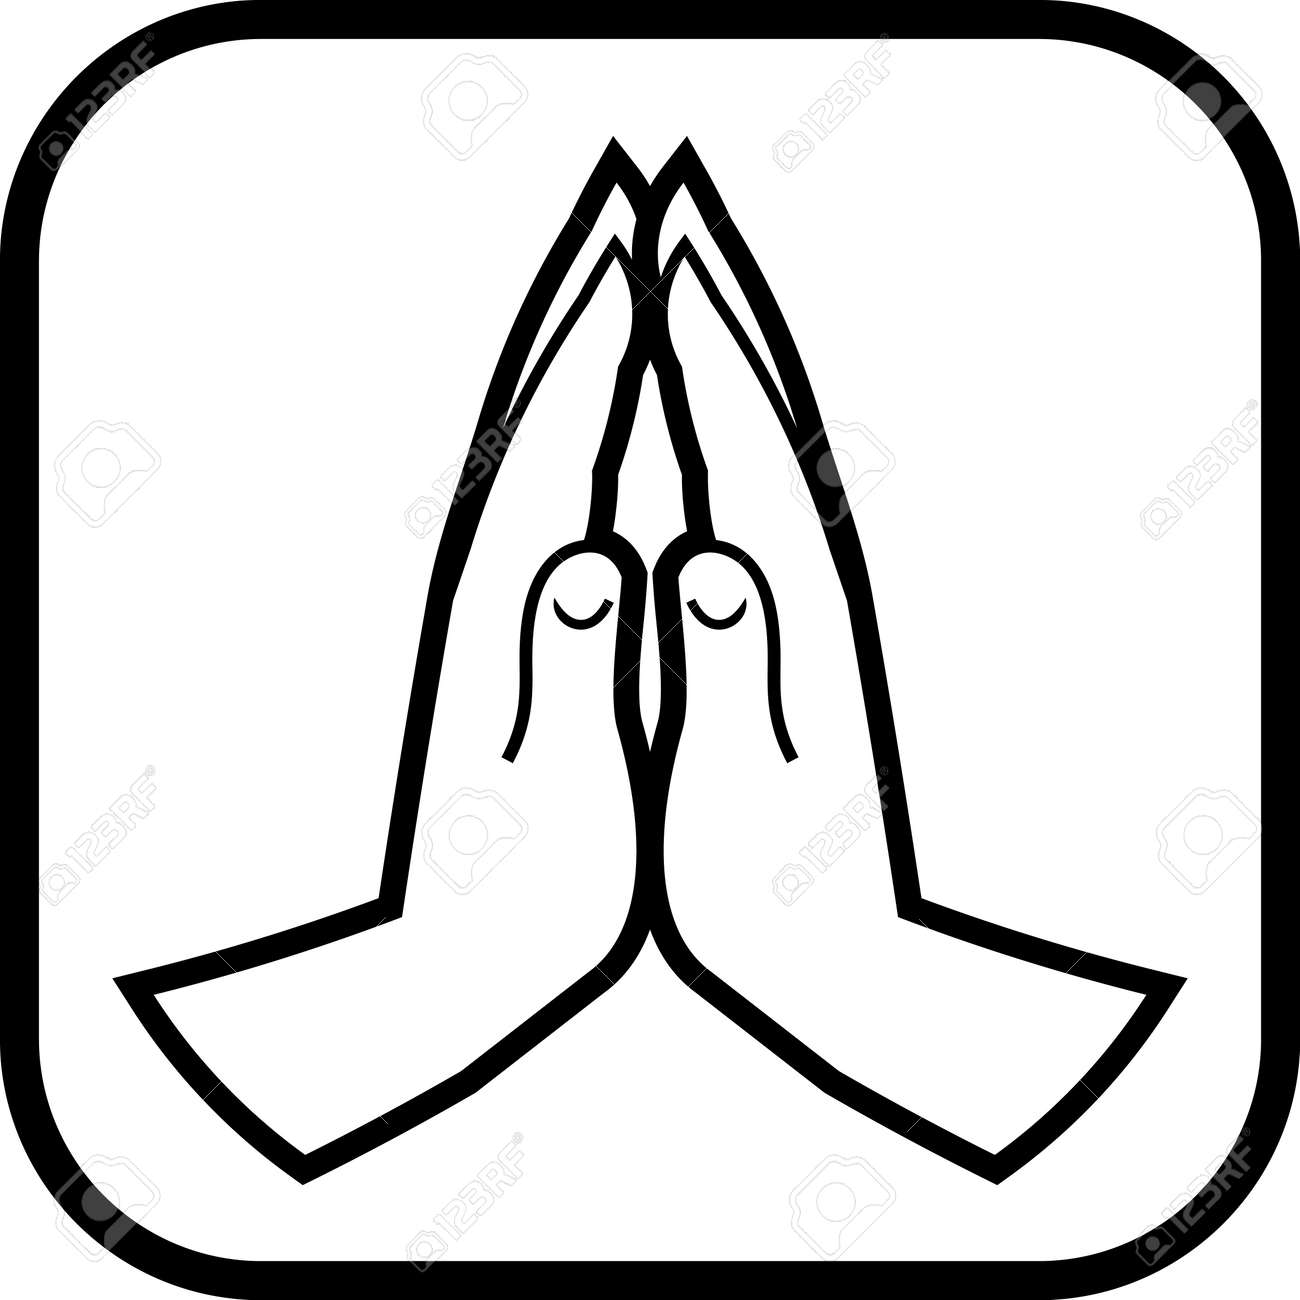 praying hands vector icon royalty free cliparts vectors and stock rh 123rf com praying hands vector png praying hands vector free download